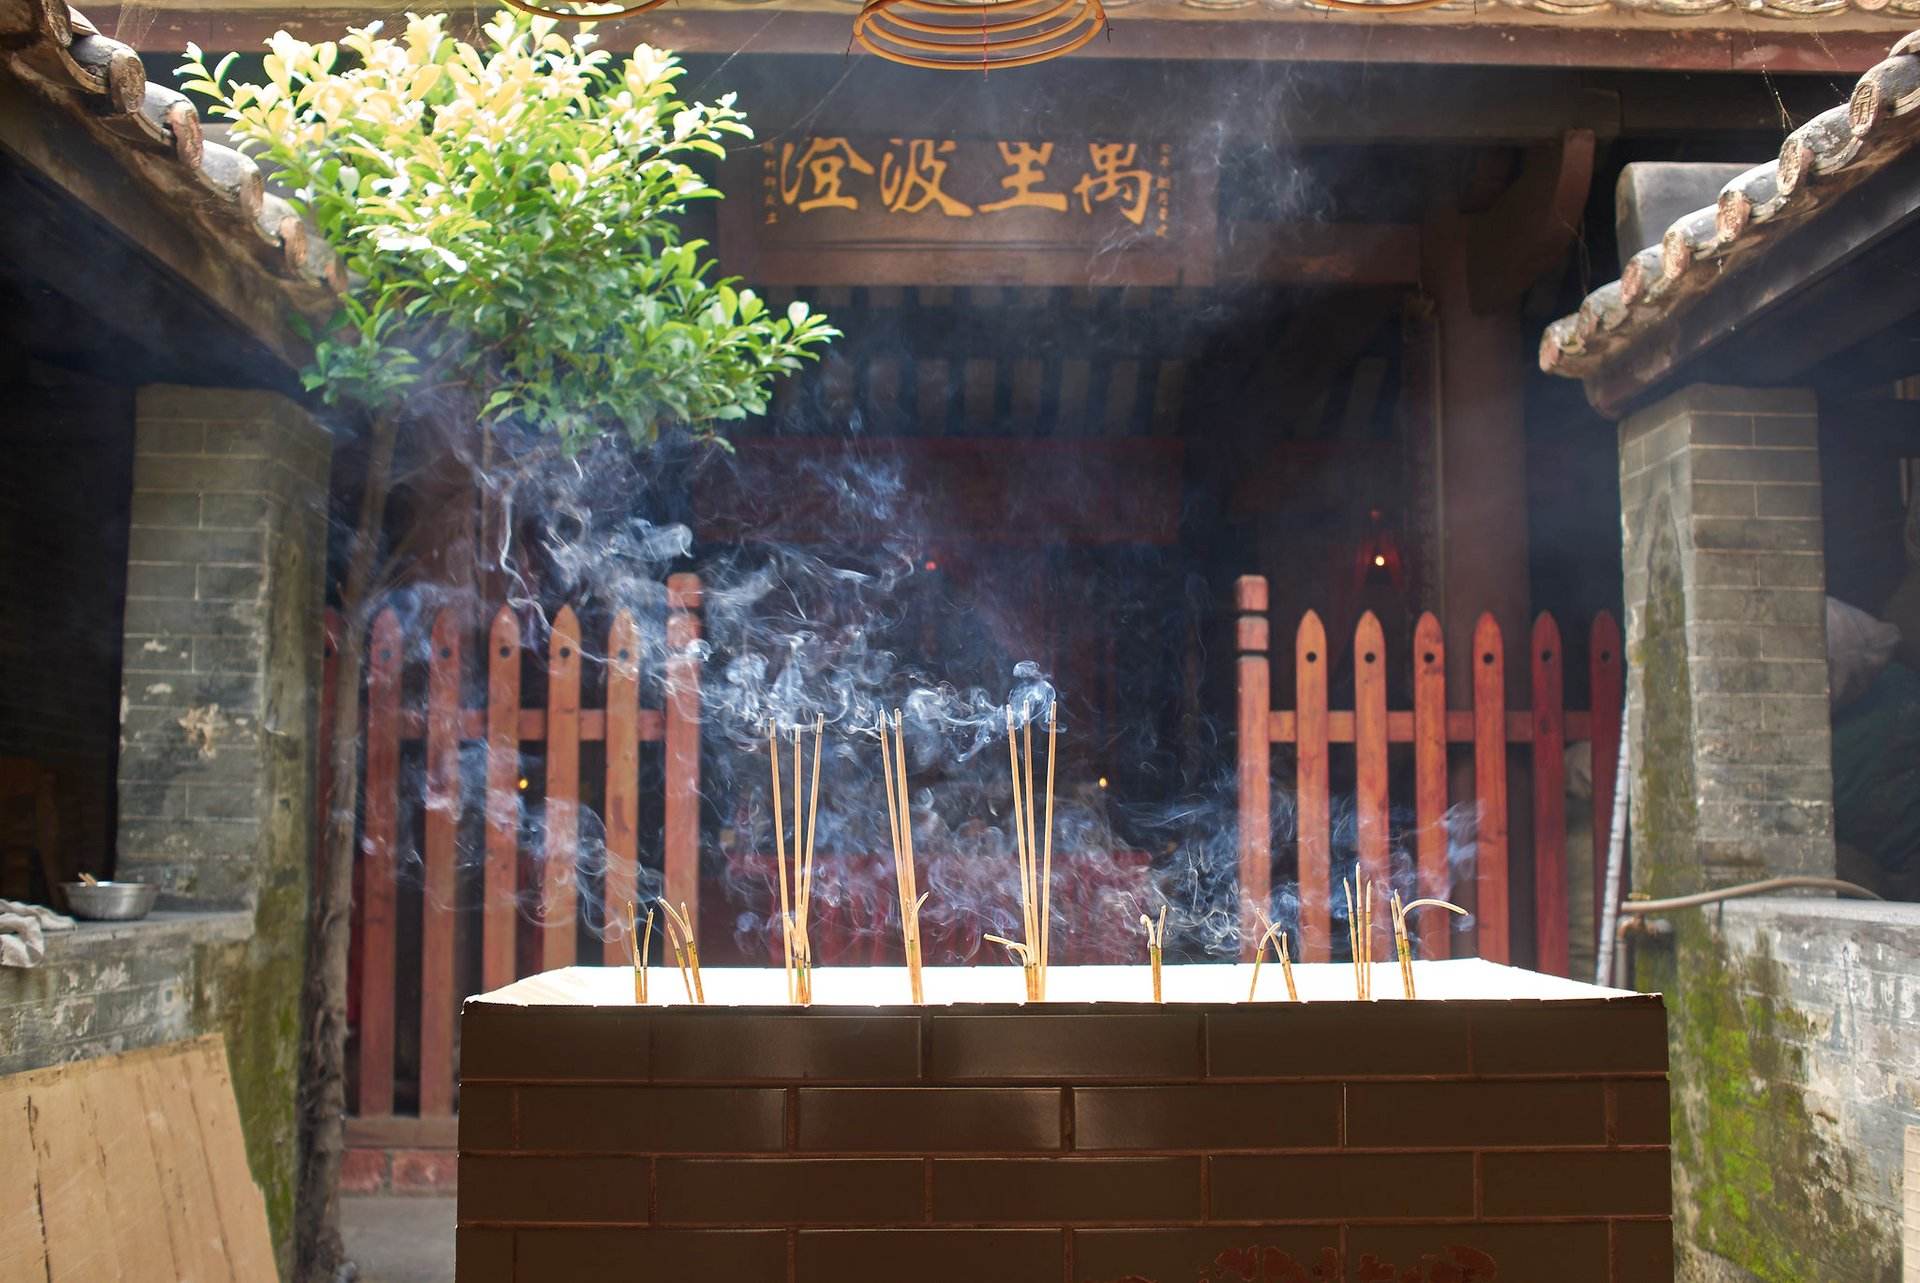 Double Seventh Festival (Qixi) in China - Best Season 2020